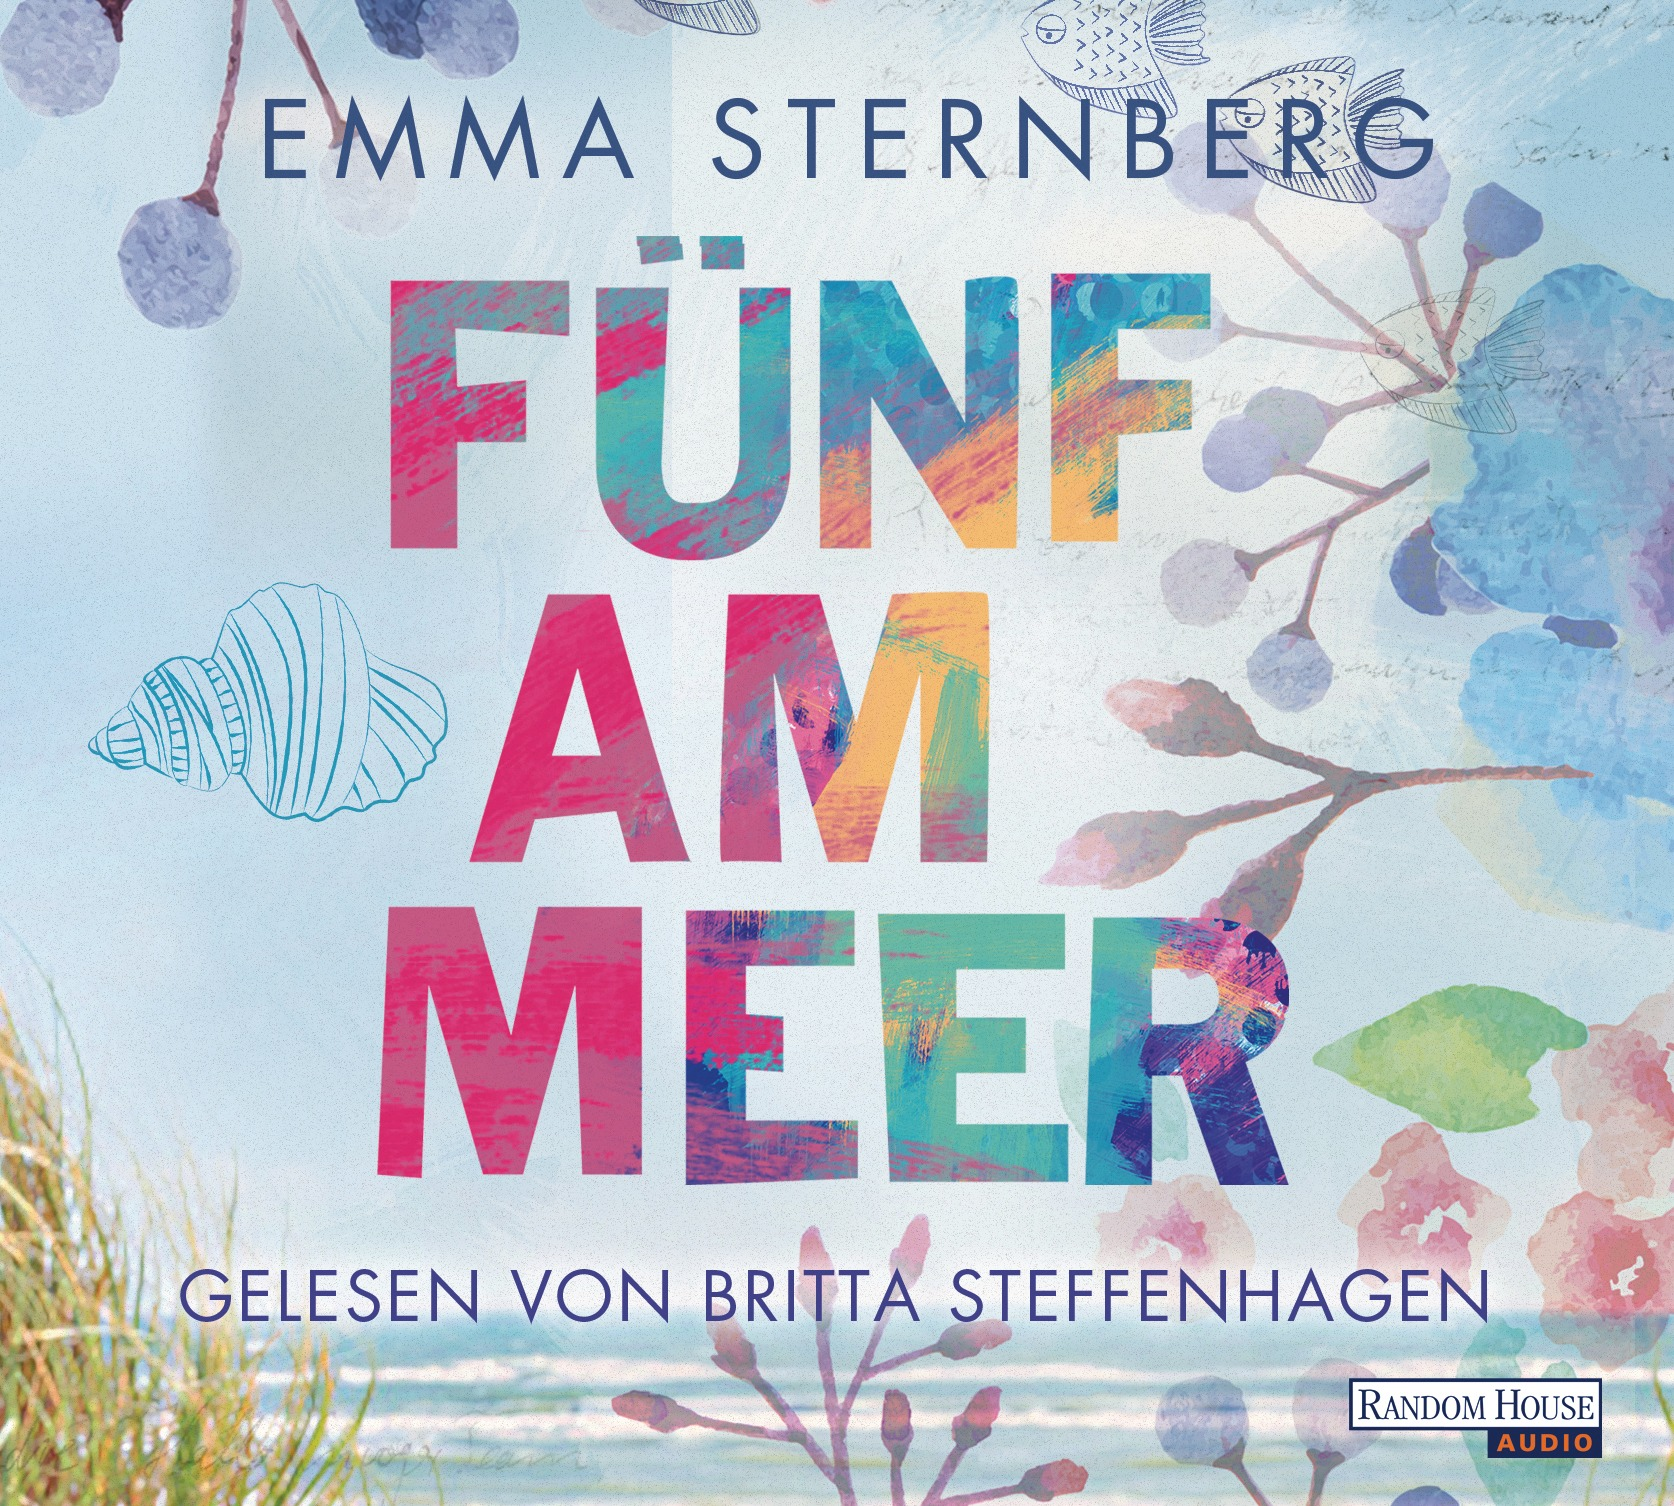 https://www.randomhouse.de/content/edition/covervoila_hires/Sternberg_EFuenf_am_Meer_6CD_163797.jpg